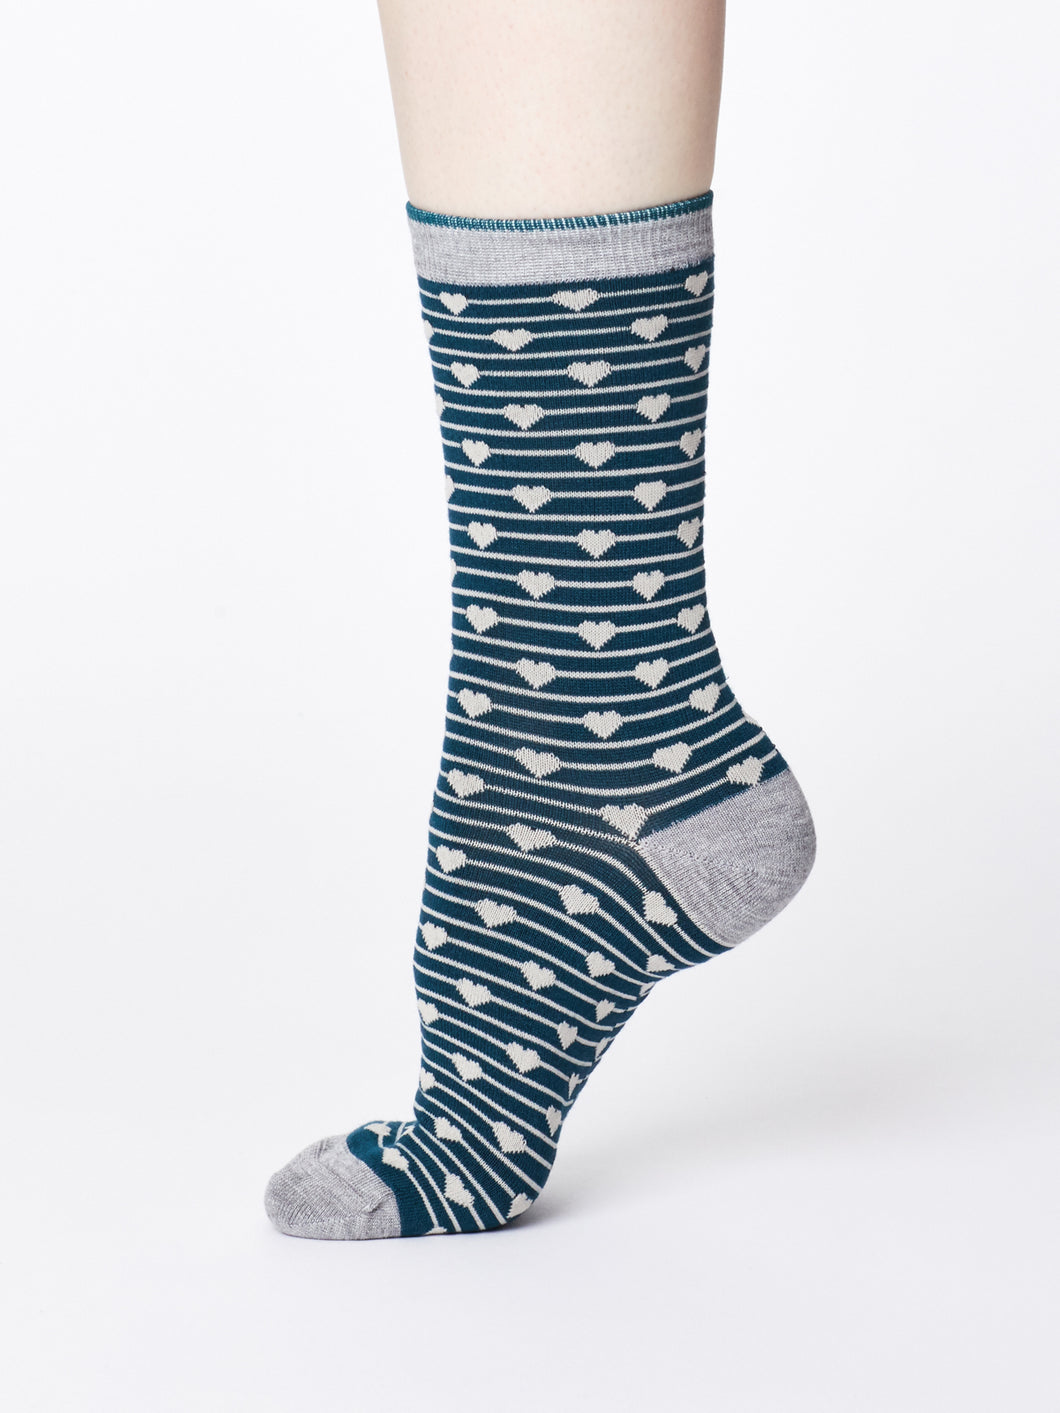 Teal Hearts Bamboo Socks